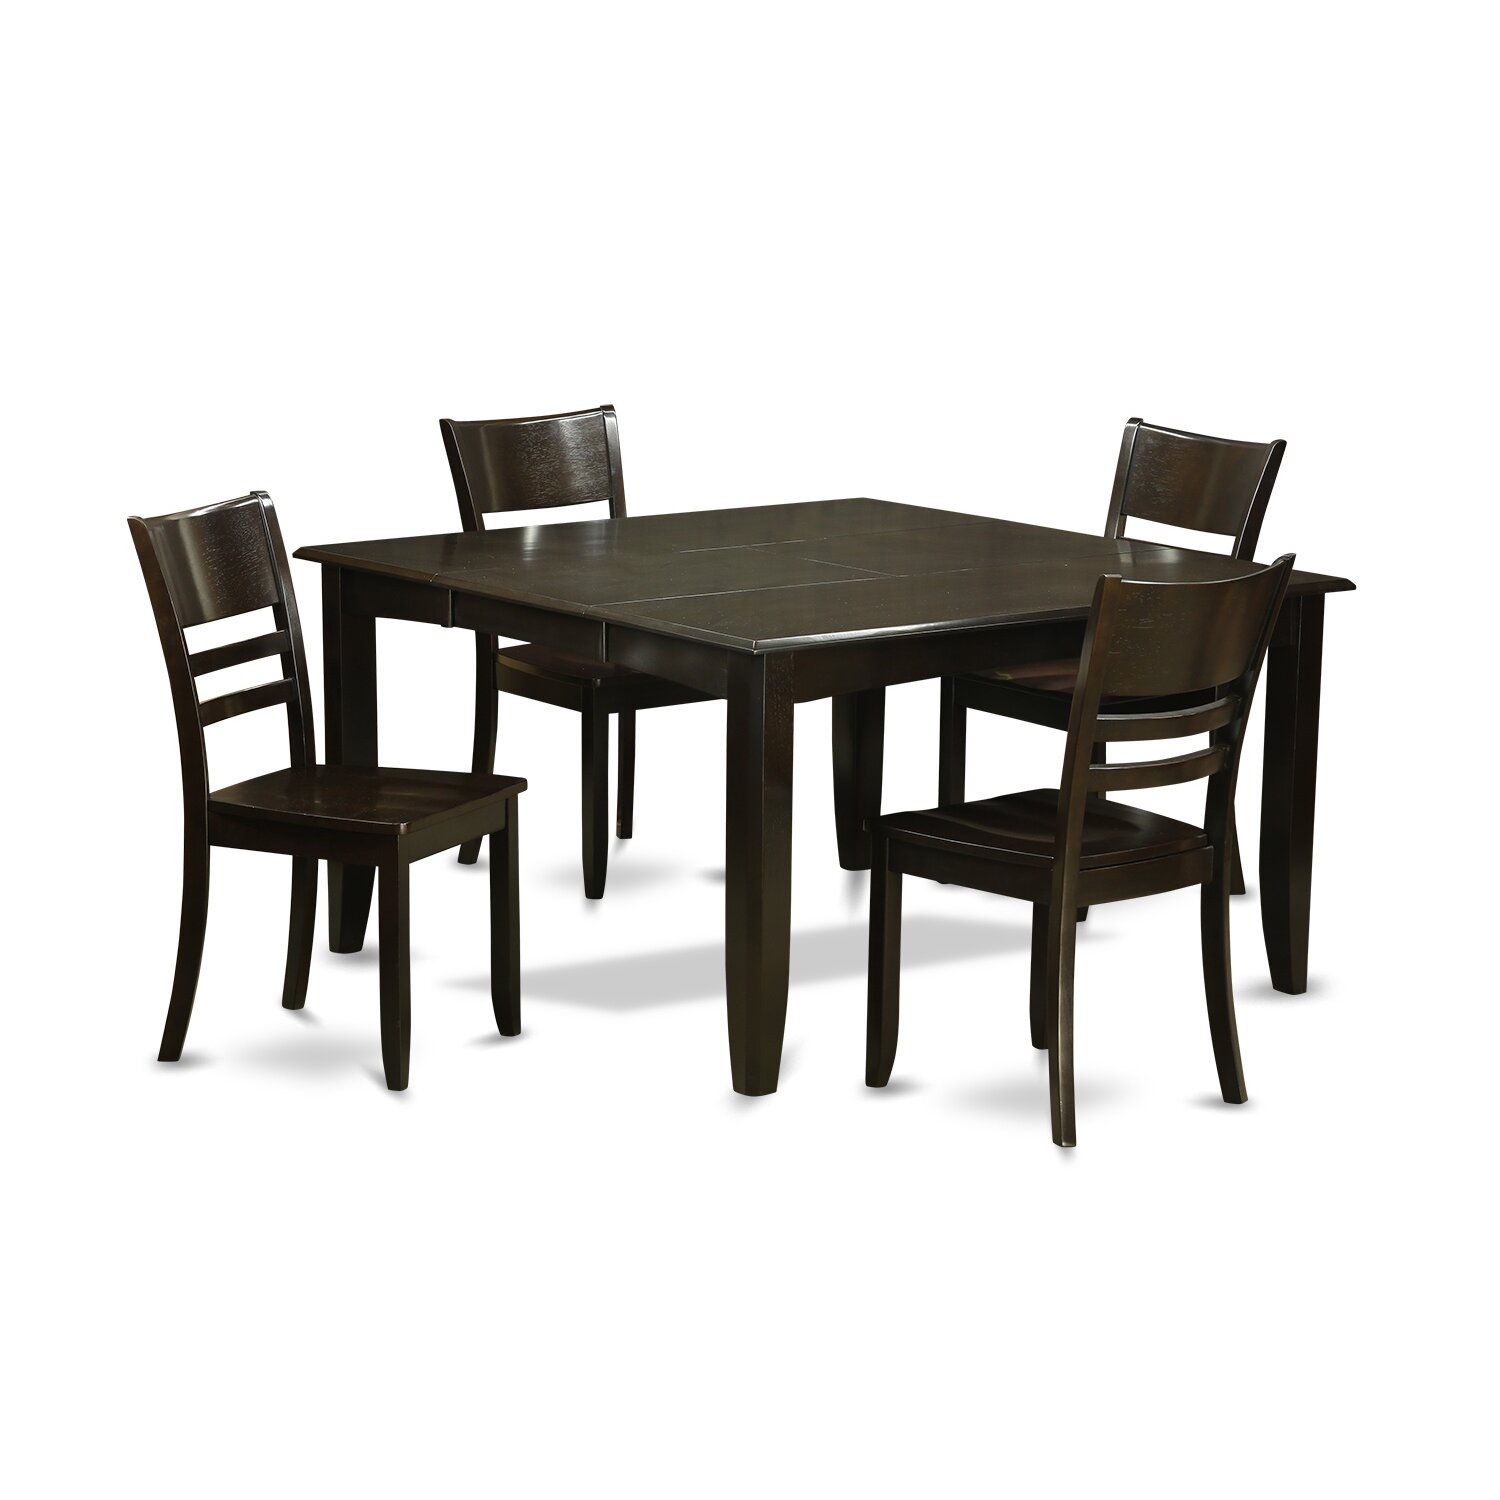 Wooden importers parfait 5 piece dining set wayfair for 4 piece dining table set